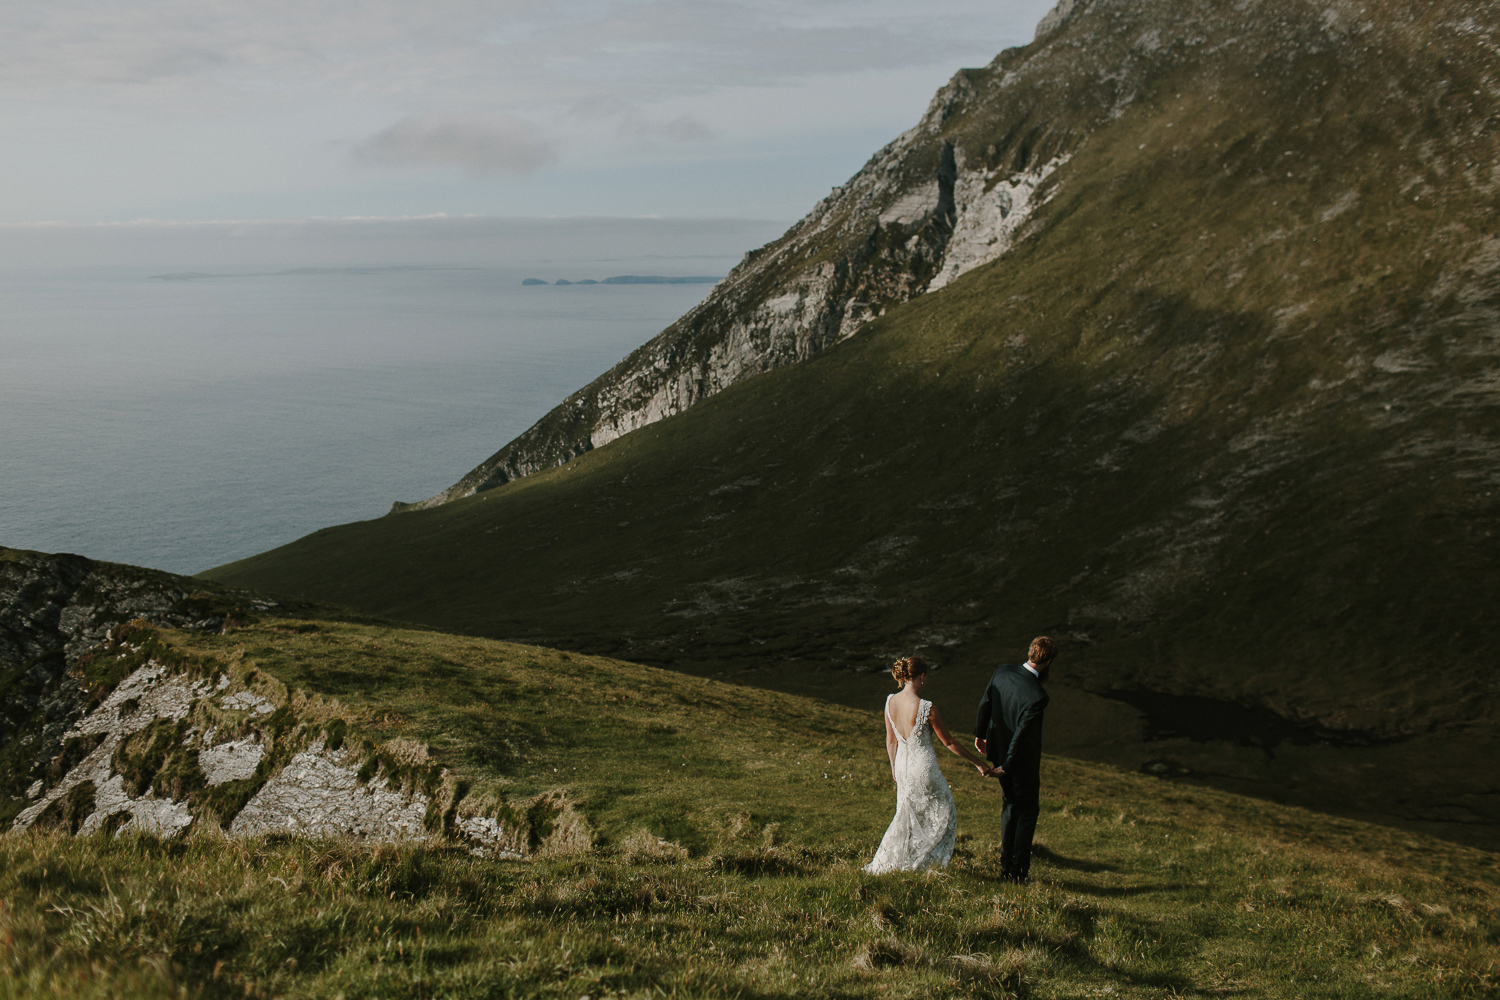 Achill-Island-Adventure-Wedding-Photographer-276.jpg